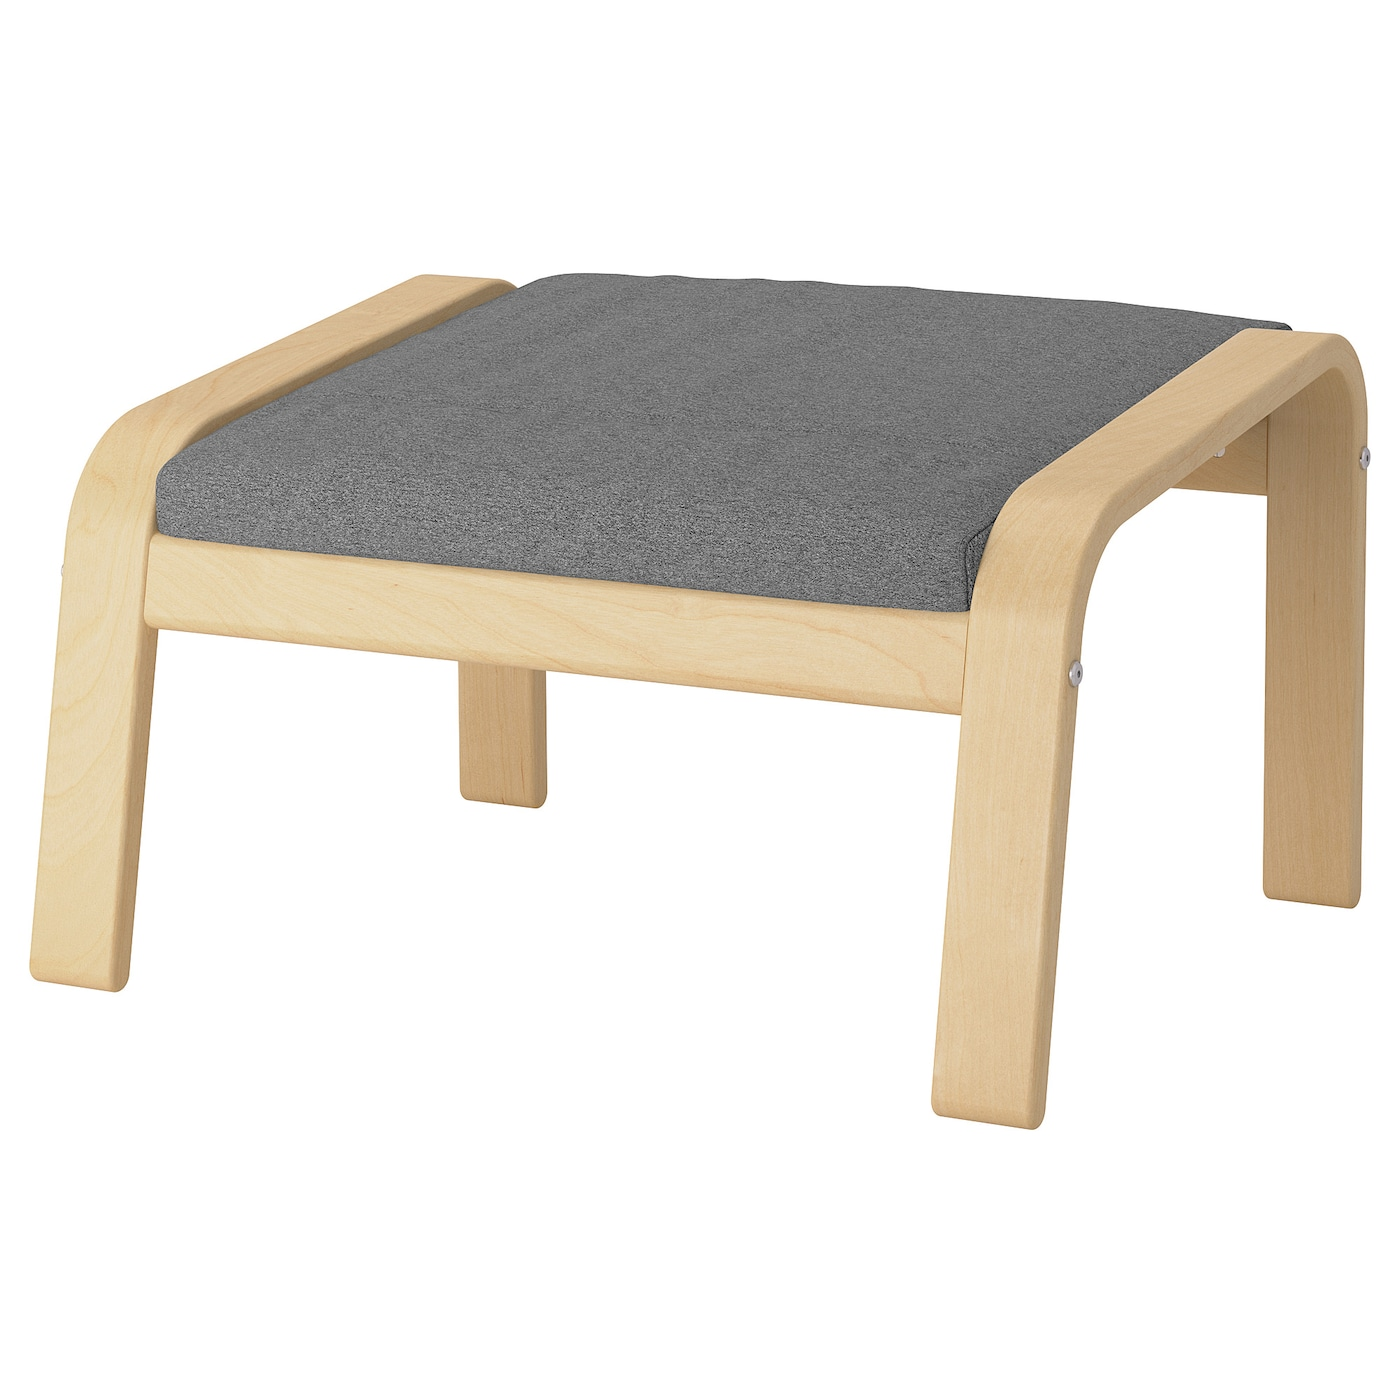 Lysed Gray Ikea POANG Footstool//Ottoman Cushion ONLY Footstool NOT Included